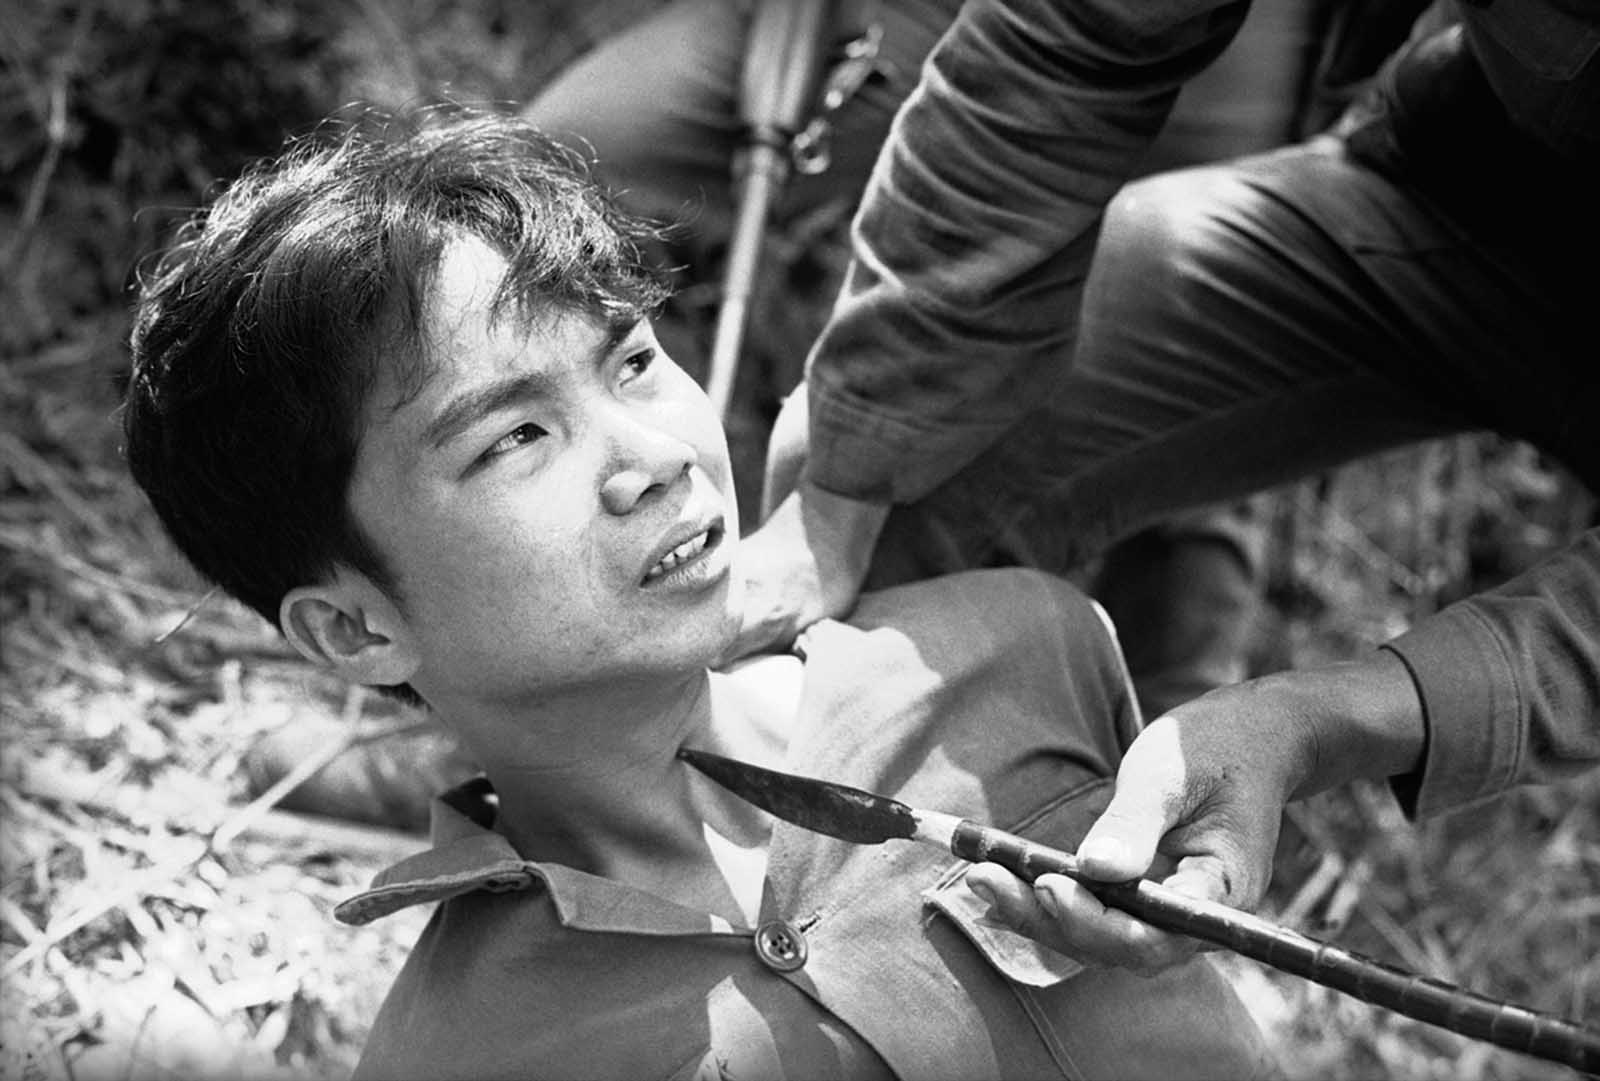 With the persuasion of a Viet Cong-made spear pressed against his throat, a captured Viet Cong guerrilla decided to talk to interrogators, telling them of a cache of Chinese grenades on March 28, 1965. He was captured with 13 other guerrillas and 17 suspects when two Vietnamese battalions overran a Viet Cong camp about 15 miles southwest of Da Nang air force base.